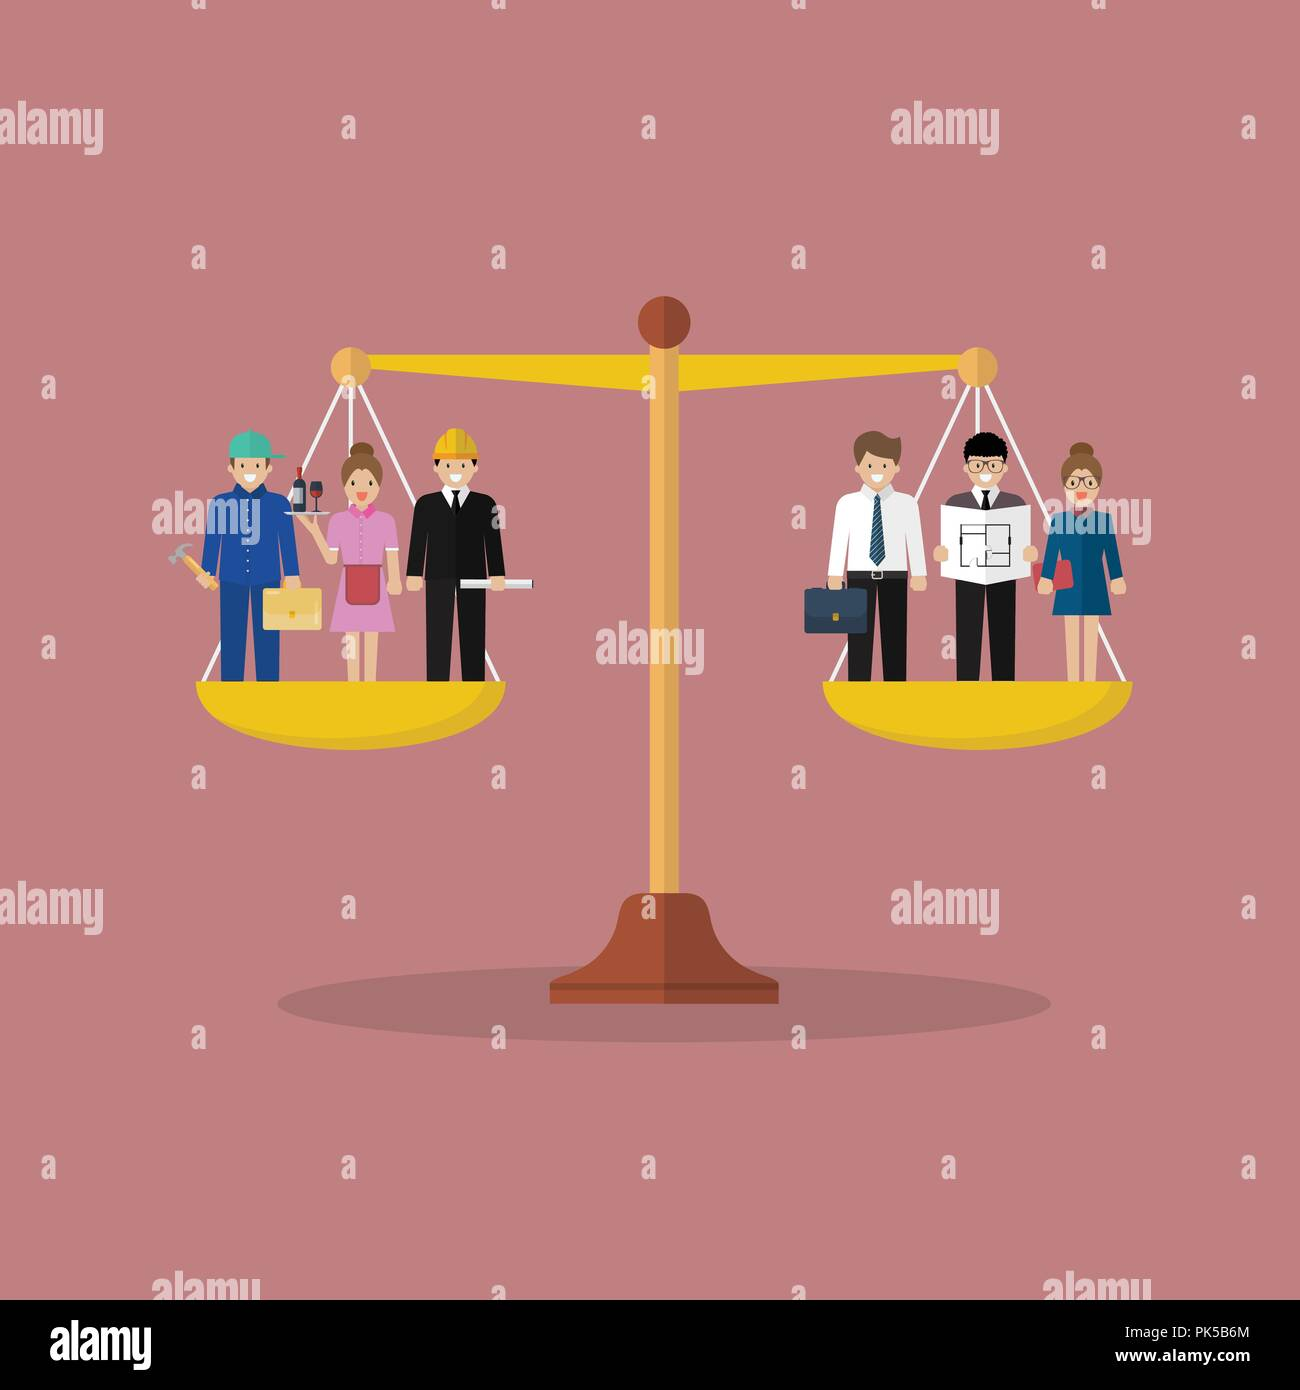 Businessman and businesswoman balancing on scales. Social justice concept - Stock Vector